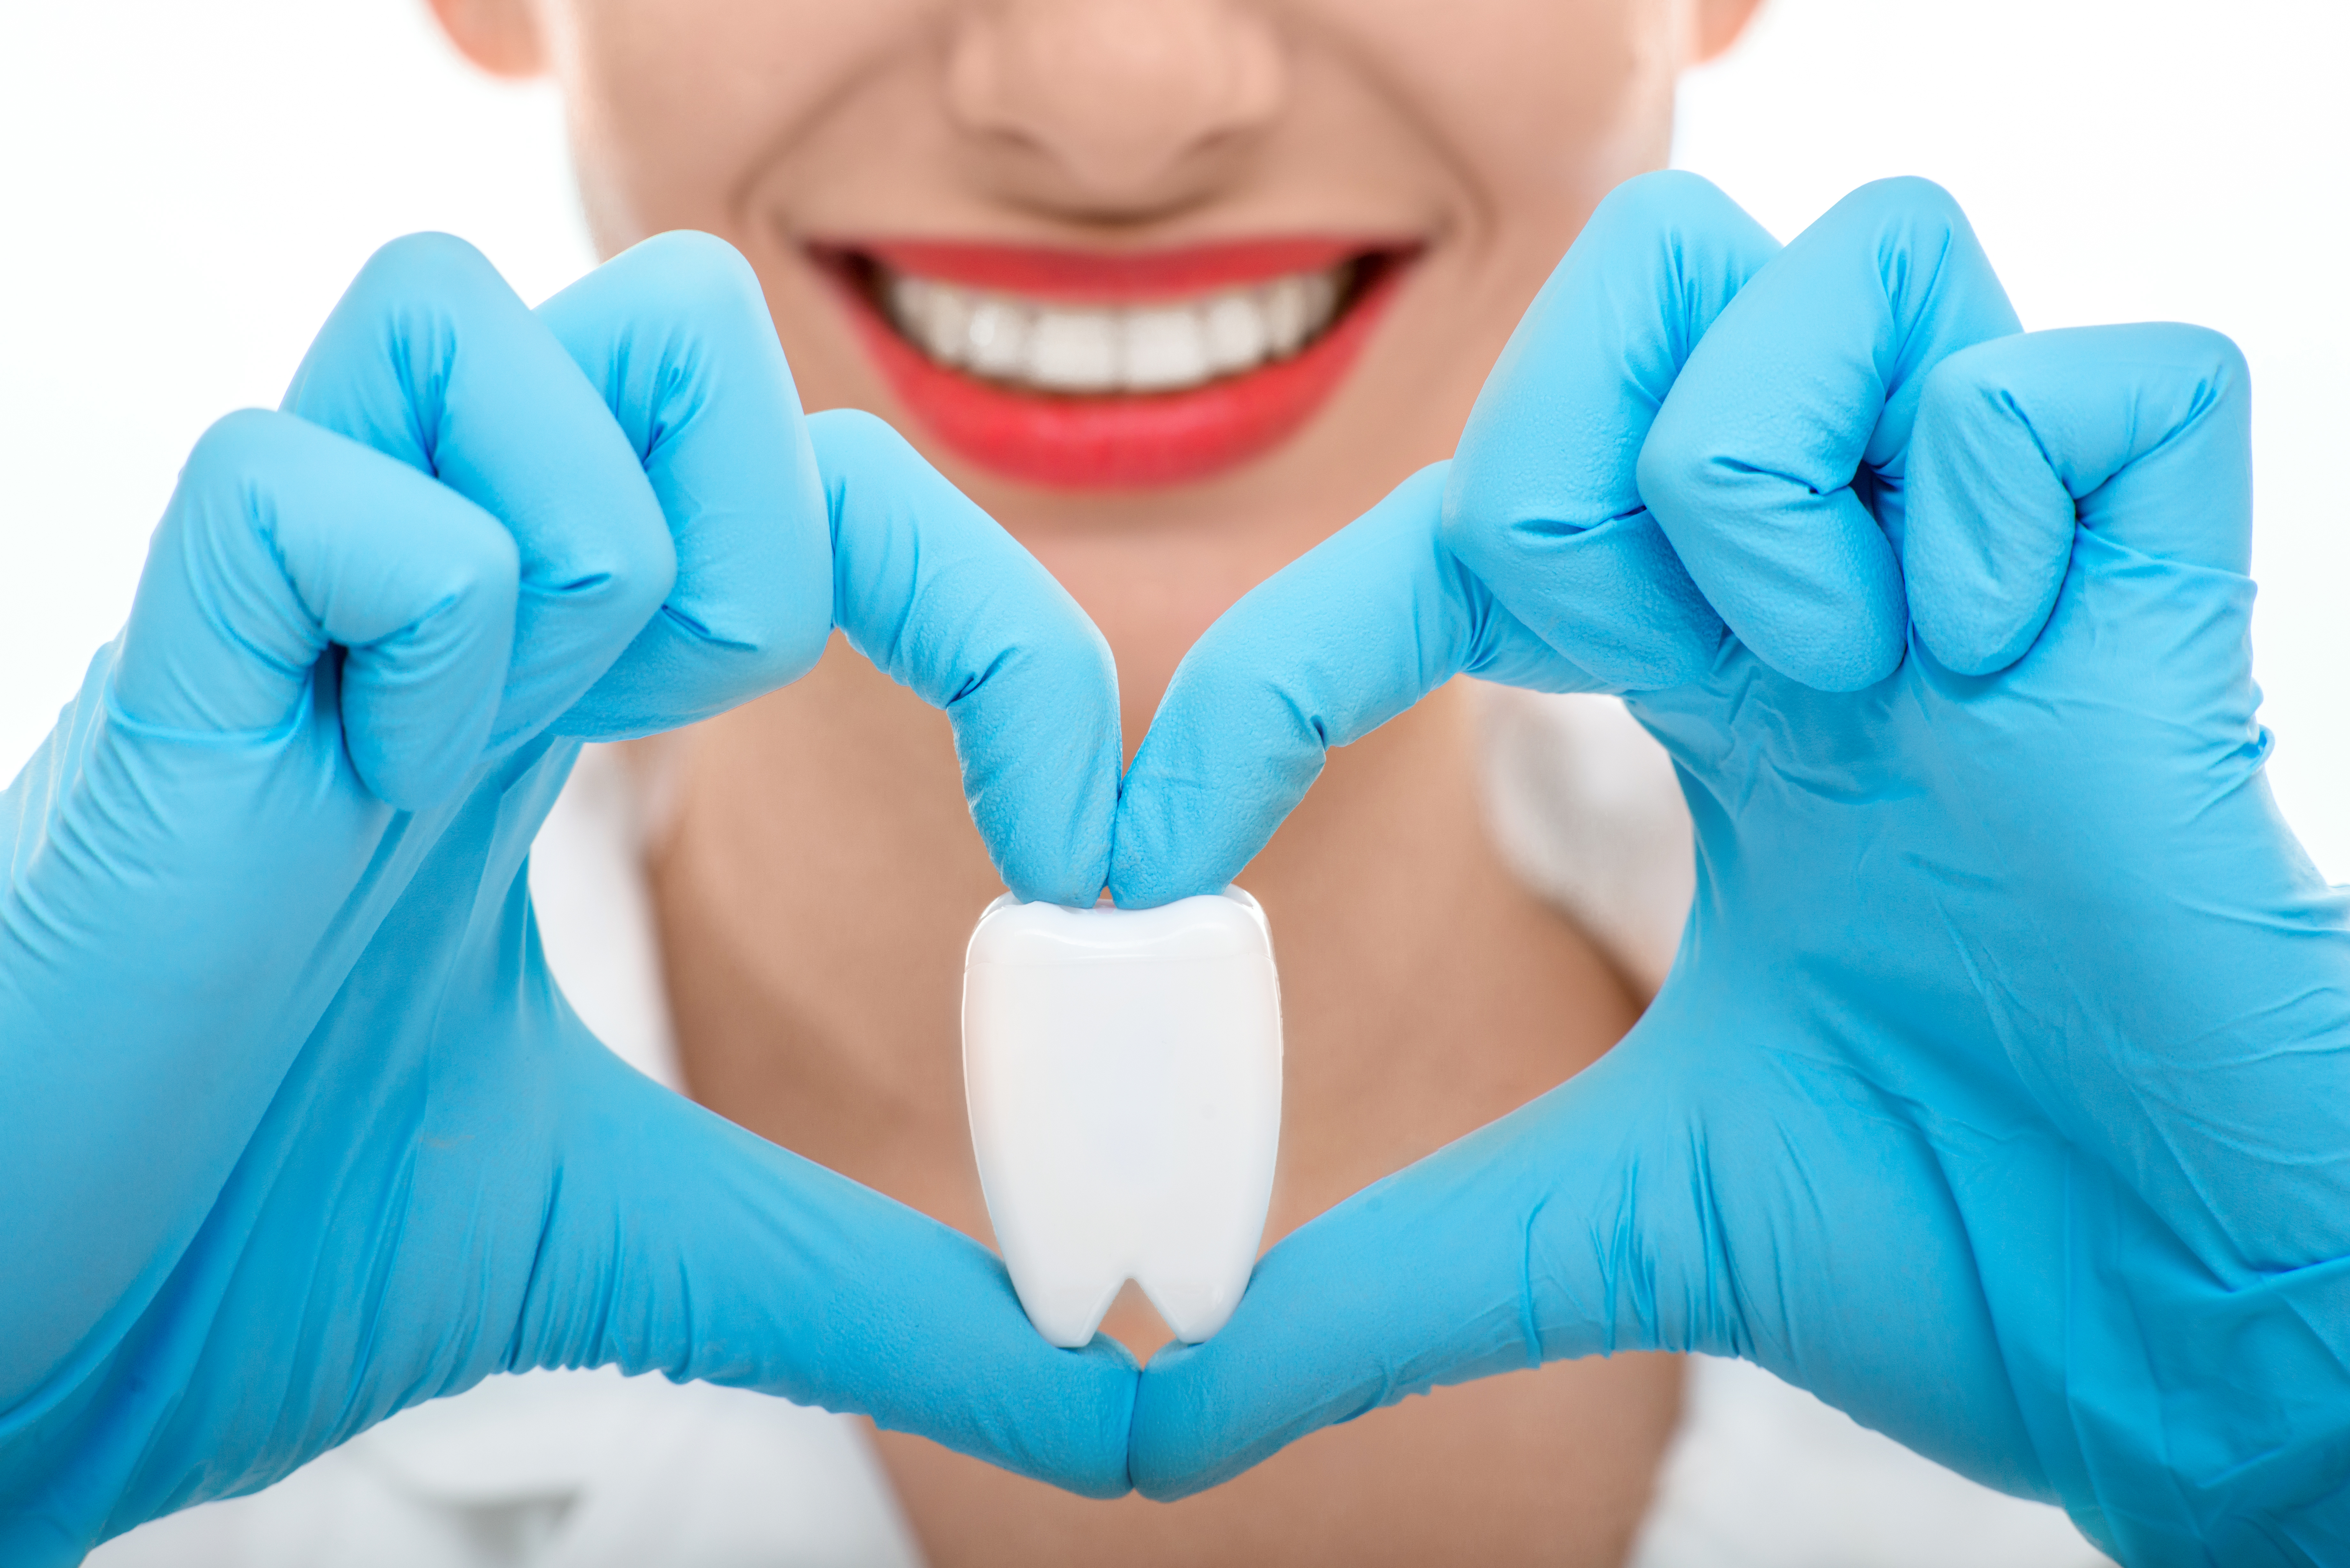 chirurgien dentiste amour metier